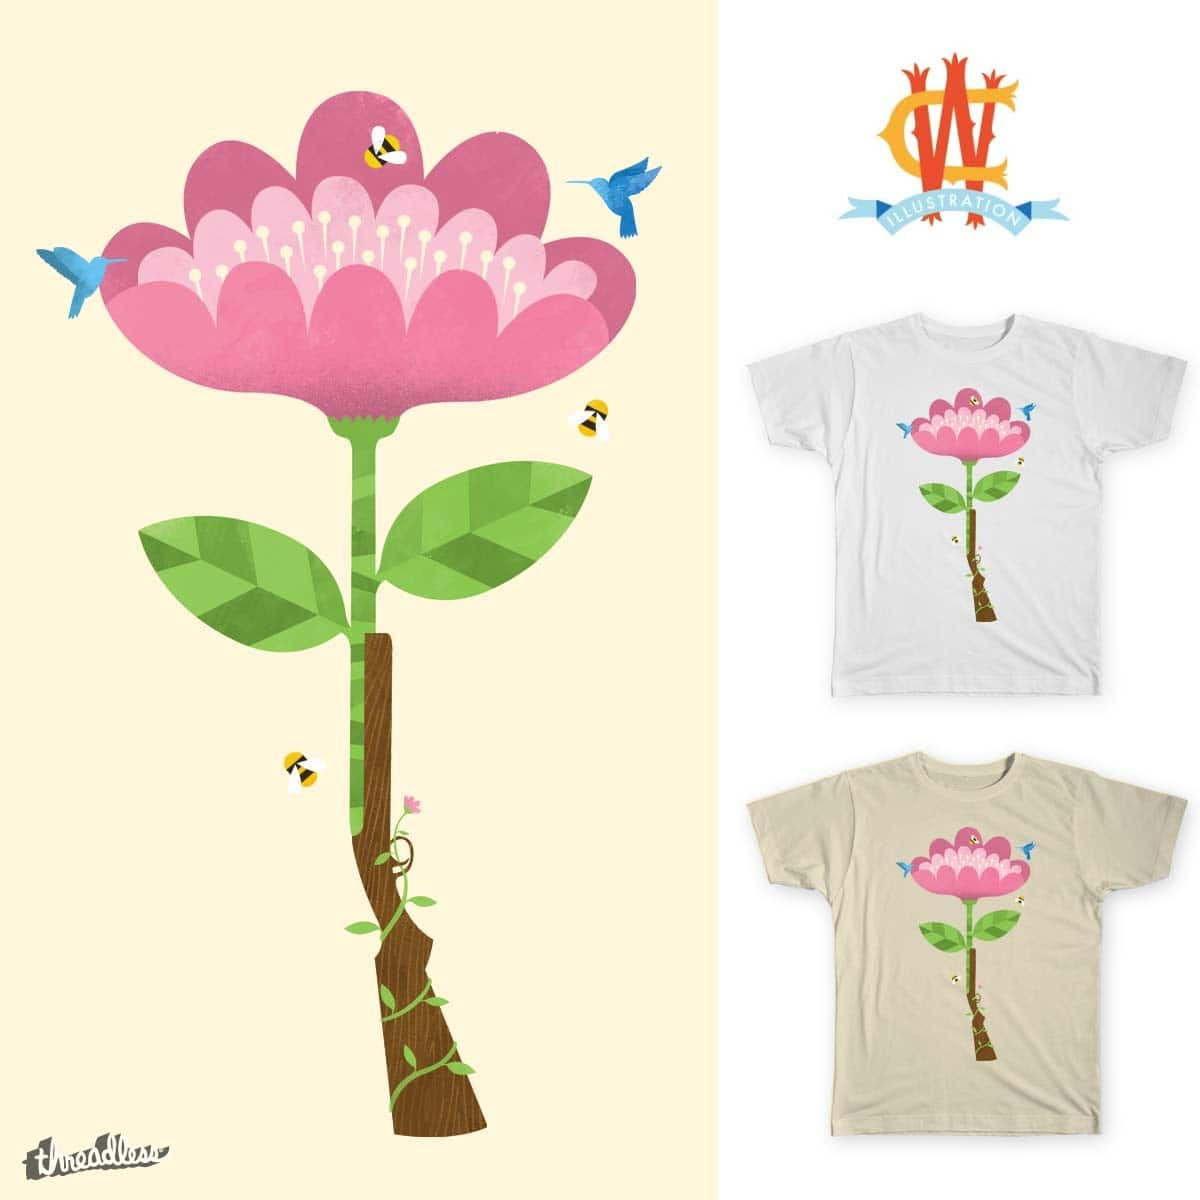 Flower Power by Wharton on Threadless